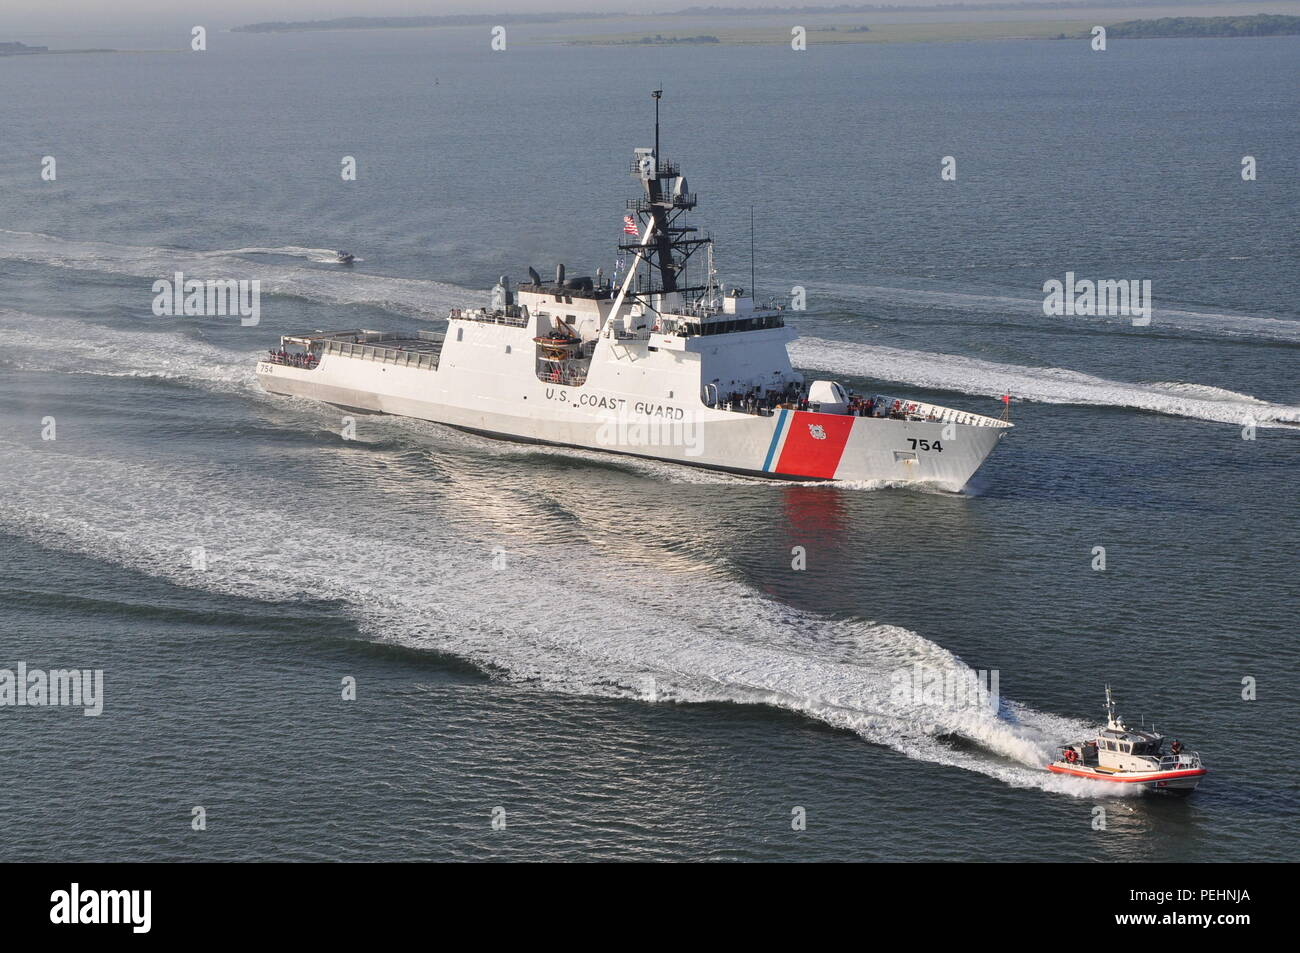 The U.S. Coast Guard Cutter James transits toward its home port of Charleston, S.C., on Aug. 28, 2015.  The James is the fifth of eight planned National Security Cutters – the largest and most technologically advanced class of cutters in the Coast Guard's fleet. (U.S. Coast Guard photo by Petty Officer 1st Class Melissa Leake) - Stock Image